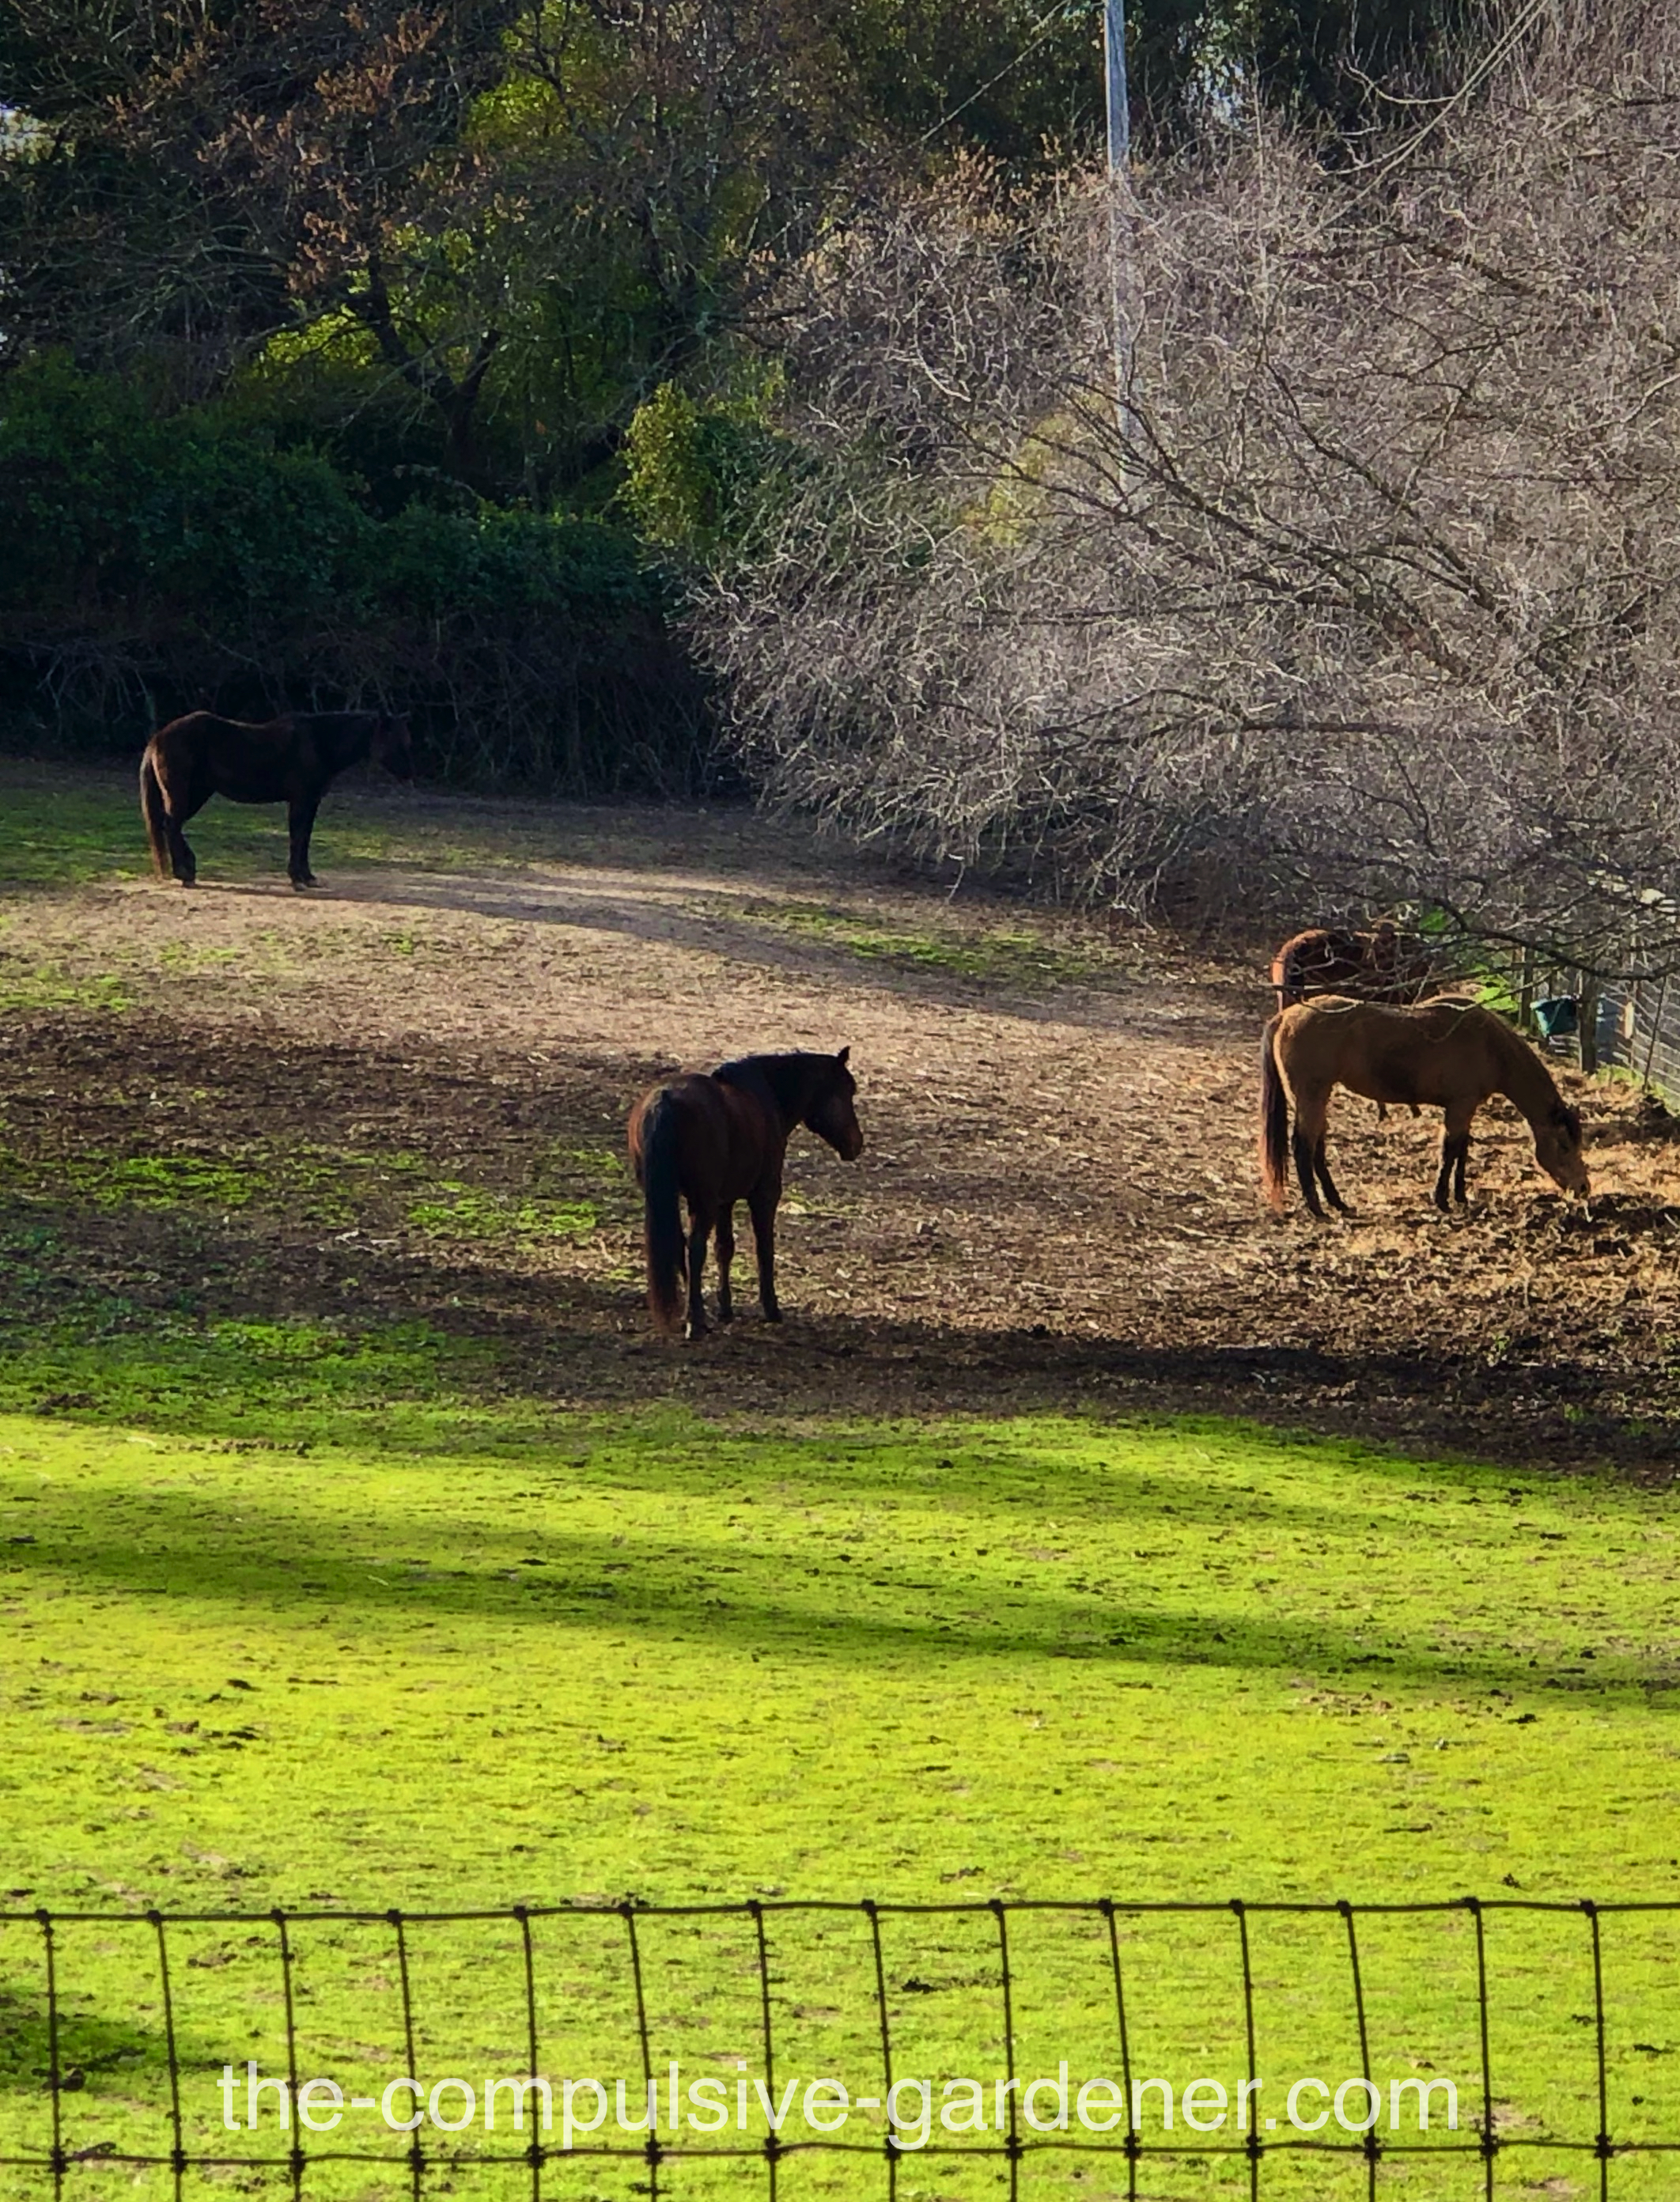 Recent rain means fresh grass for the horses of SoCo.